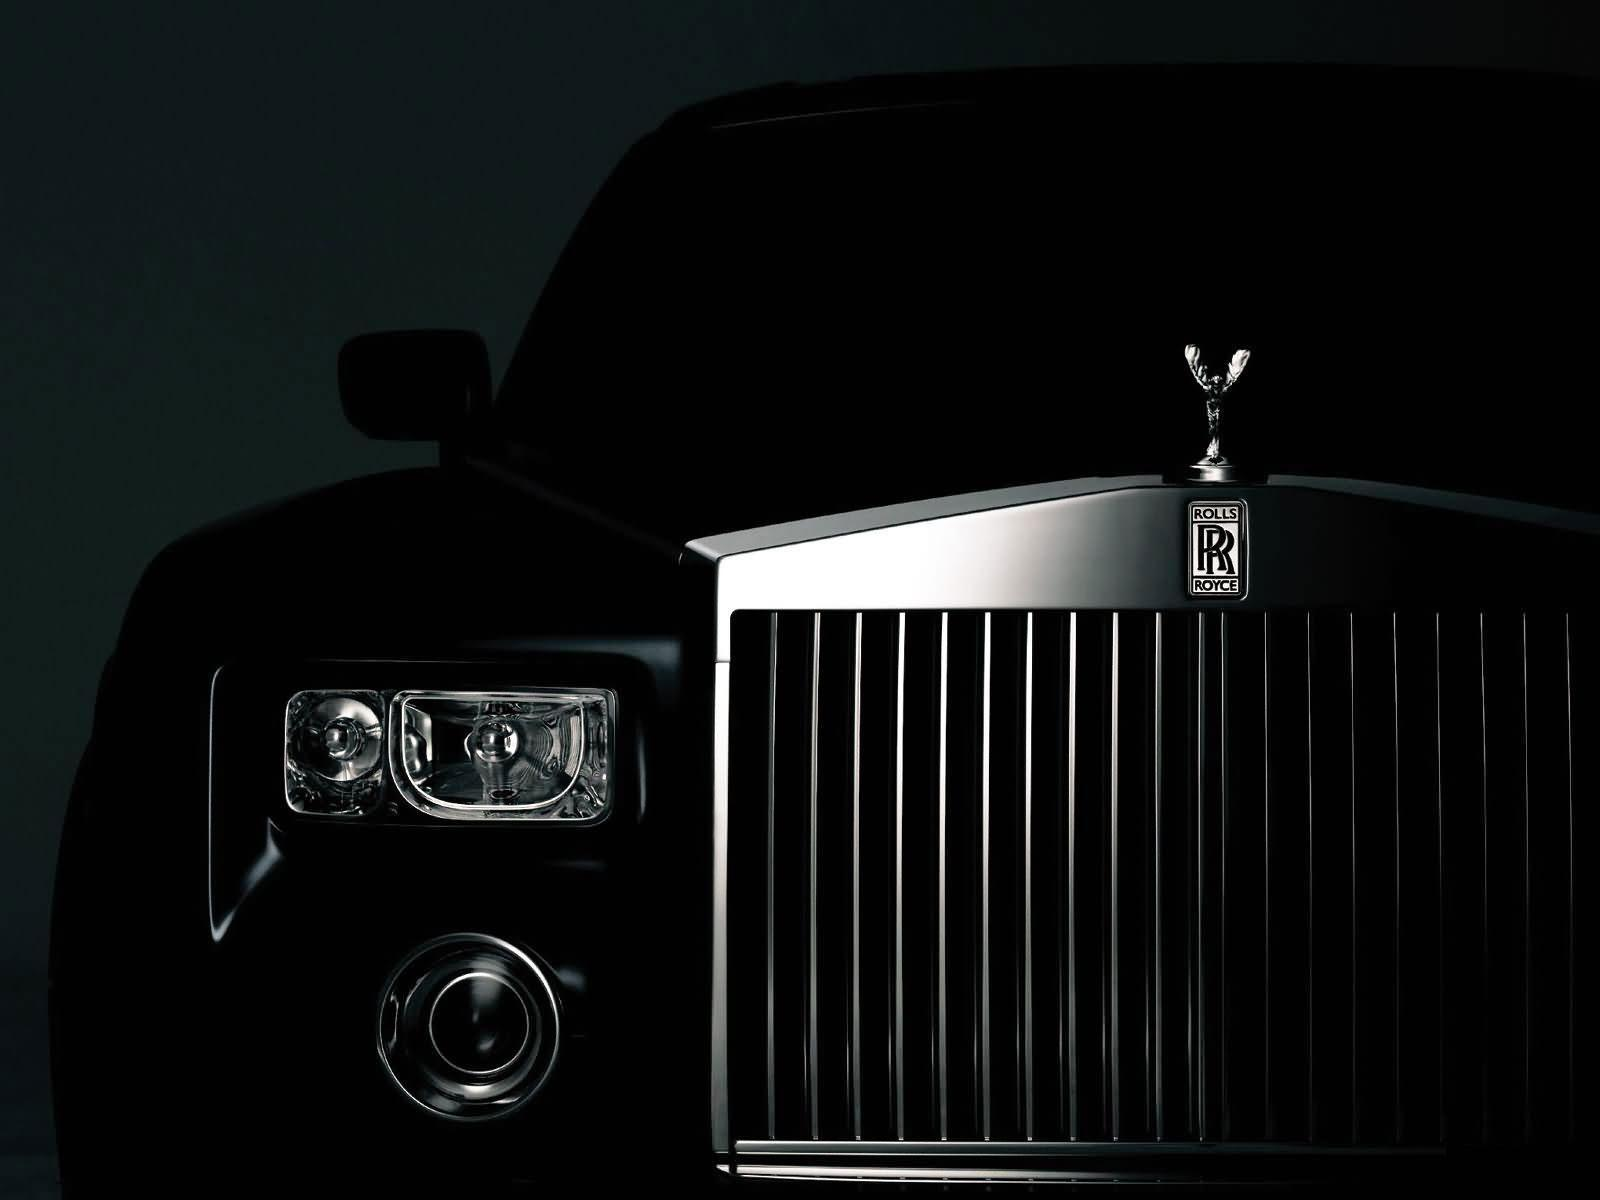 Cars Wallpapers Rolls Royce Phantom | PicGifs.com